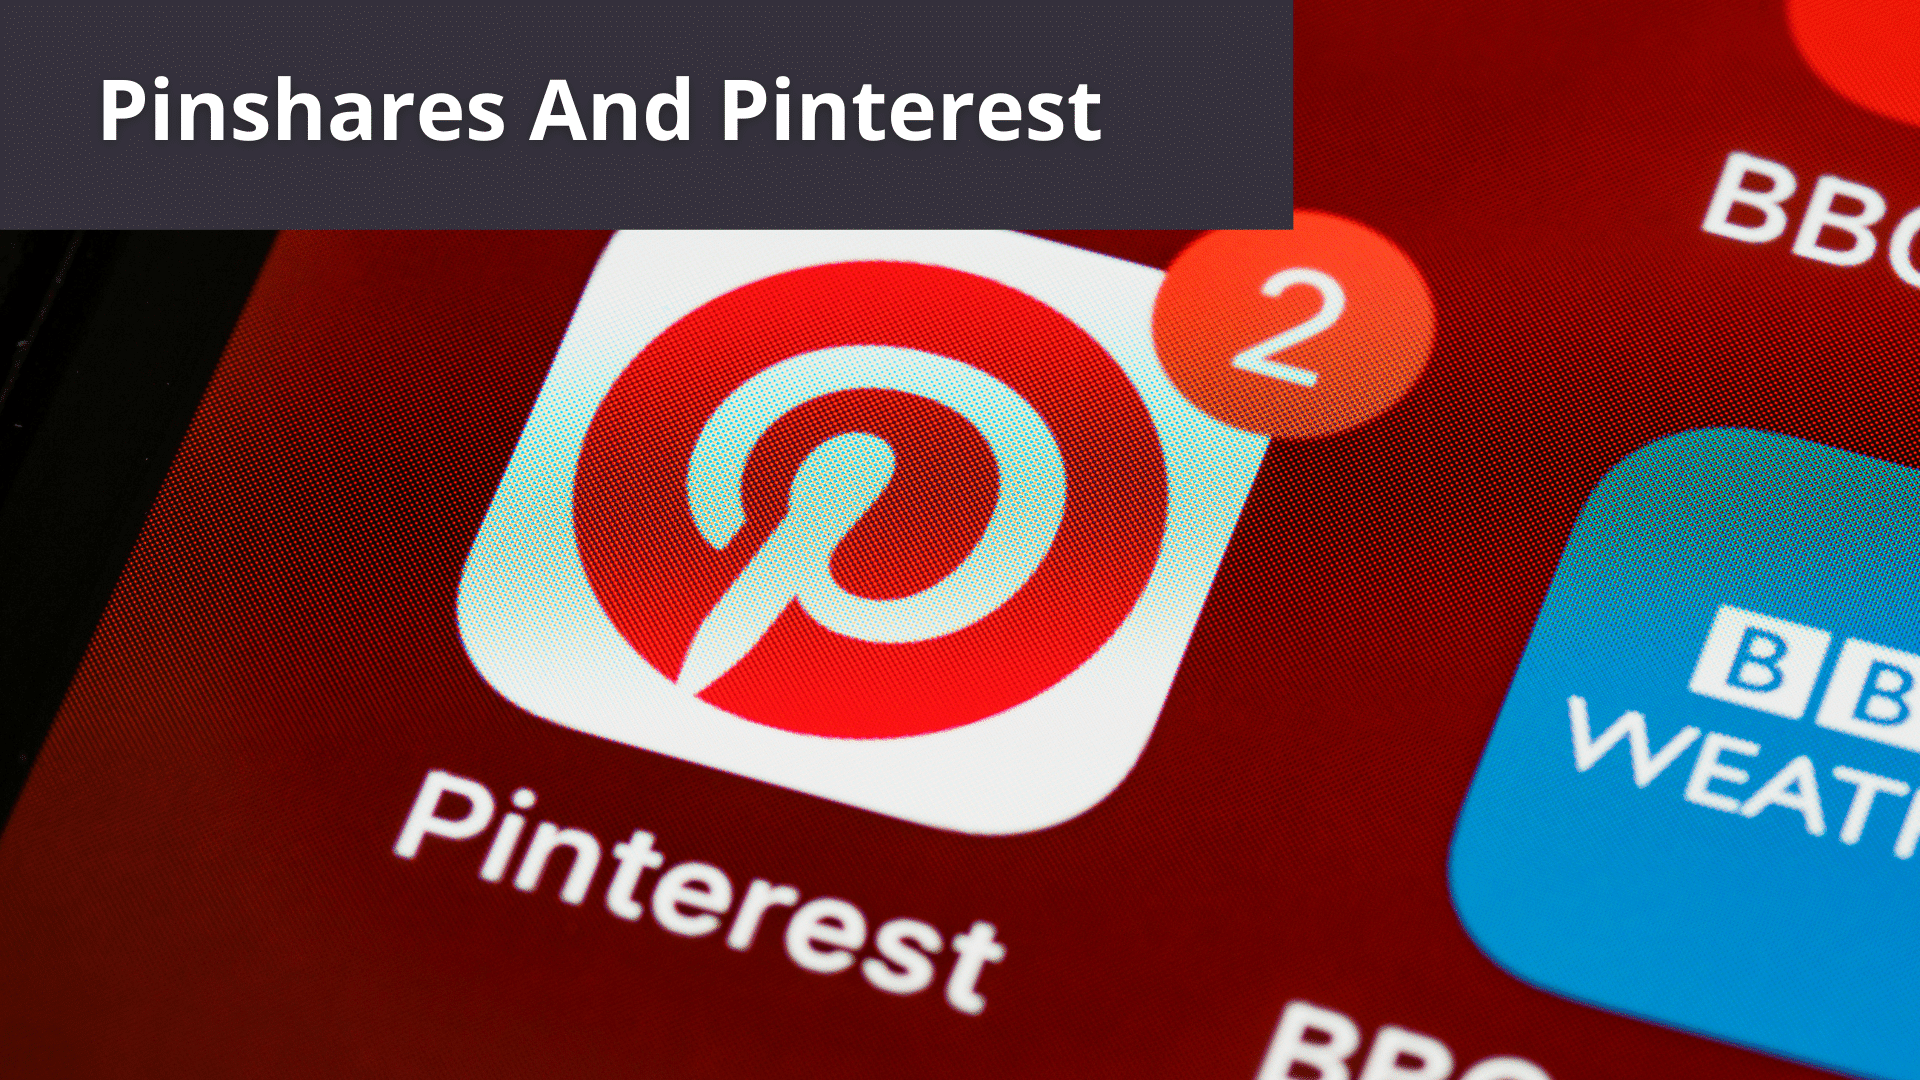 Pinshares And Pinterest - Two Of The Best Pinshares For Branding Your Business On The Internet